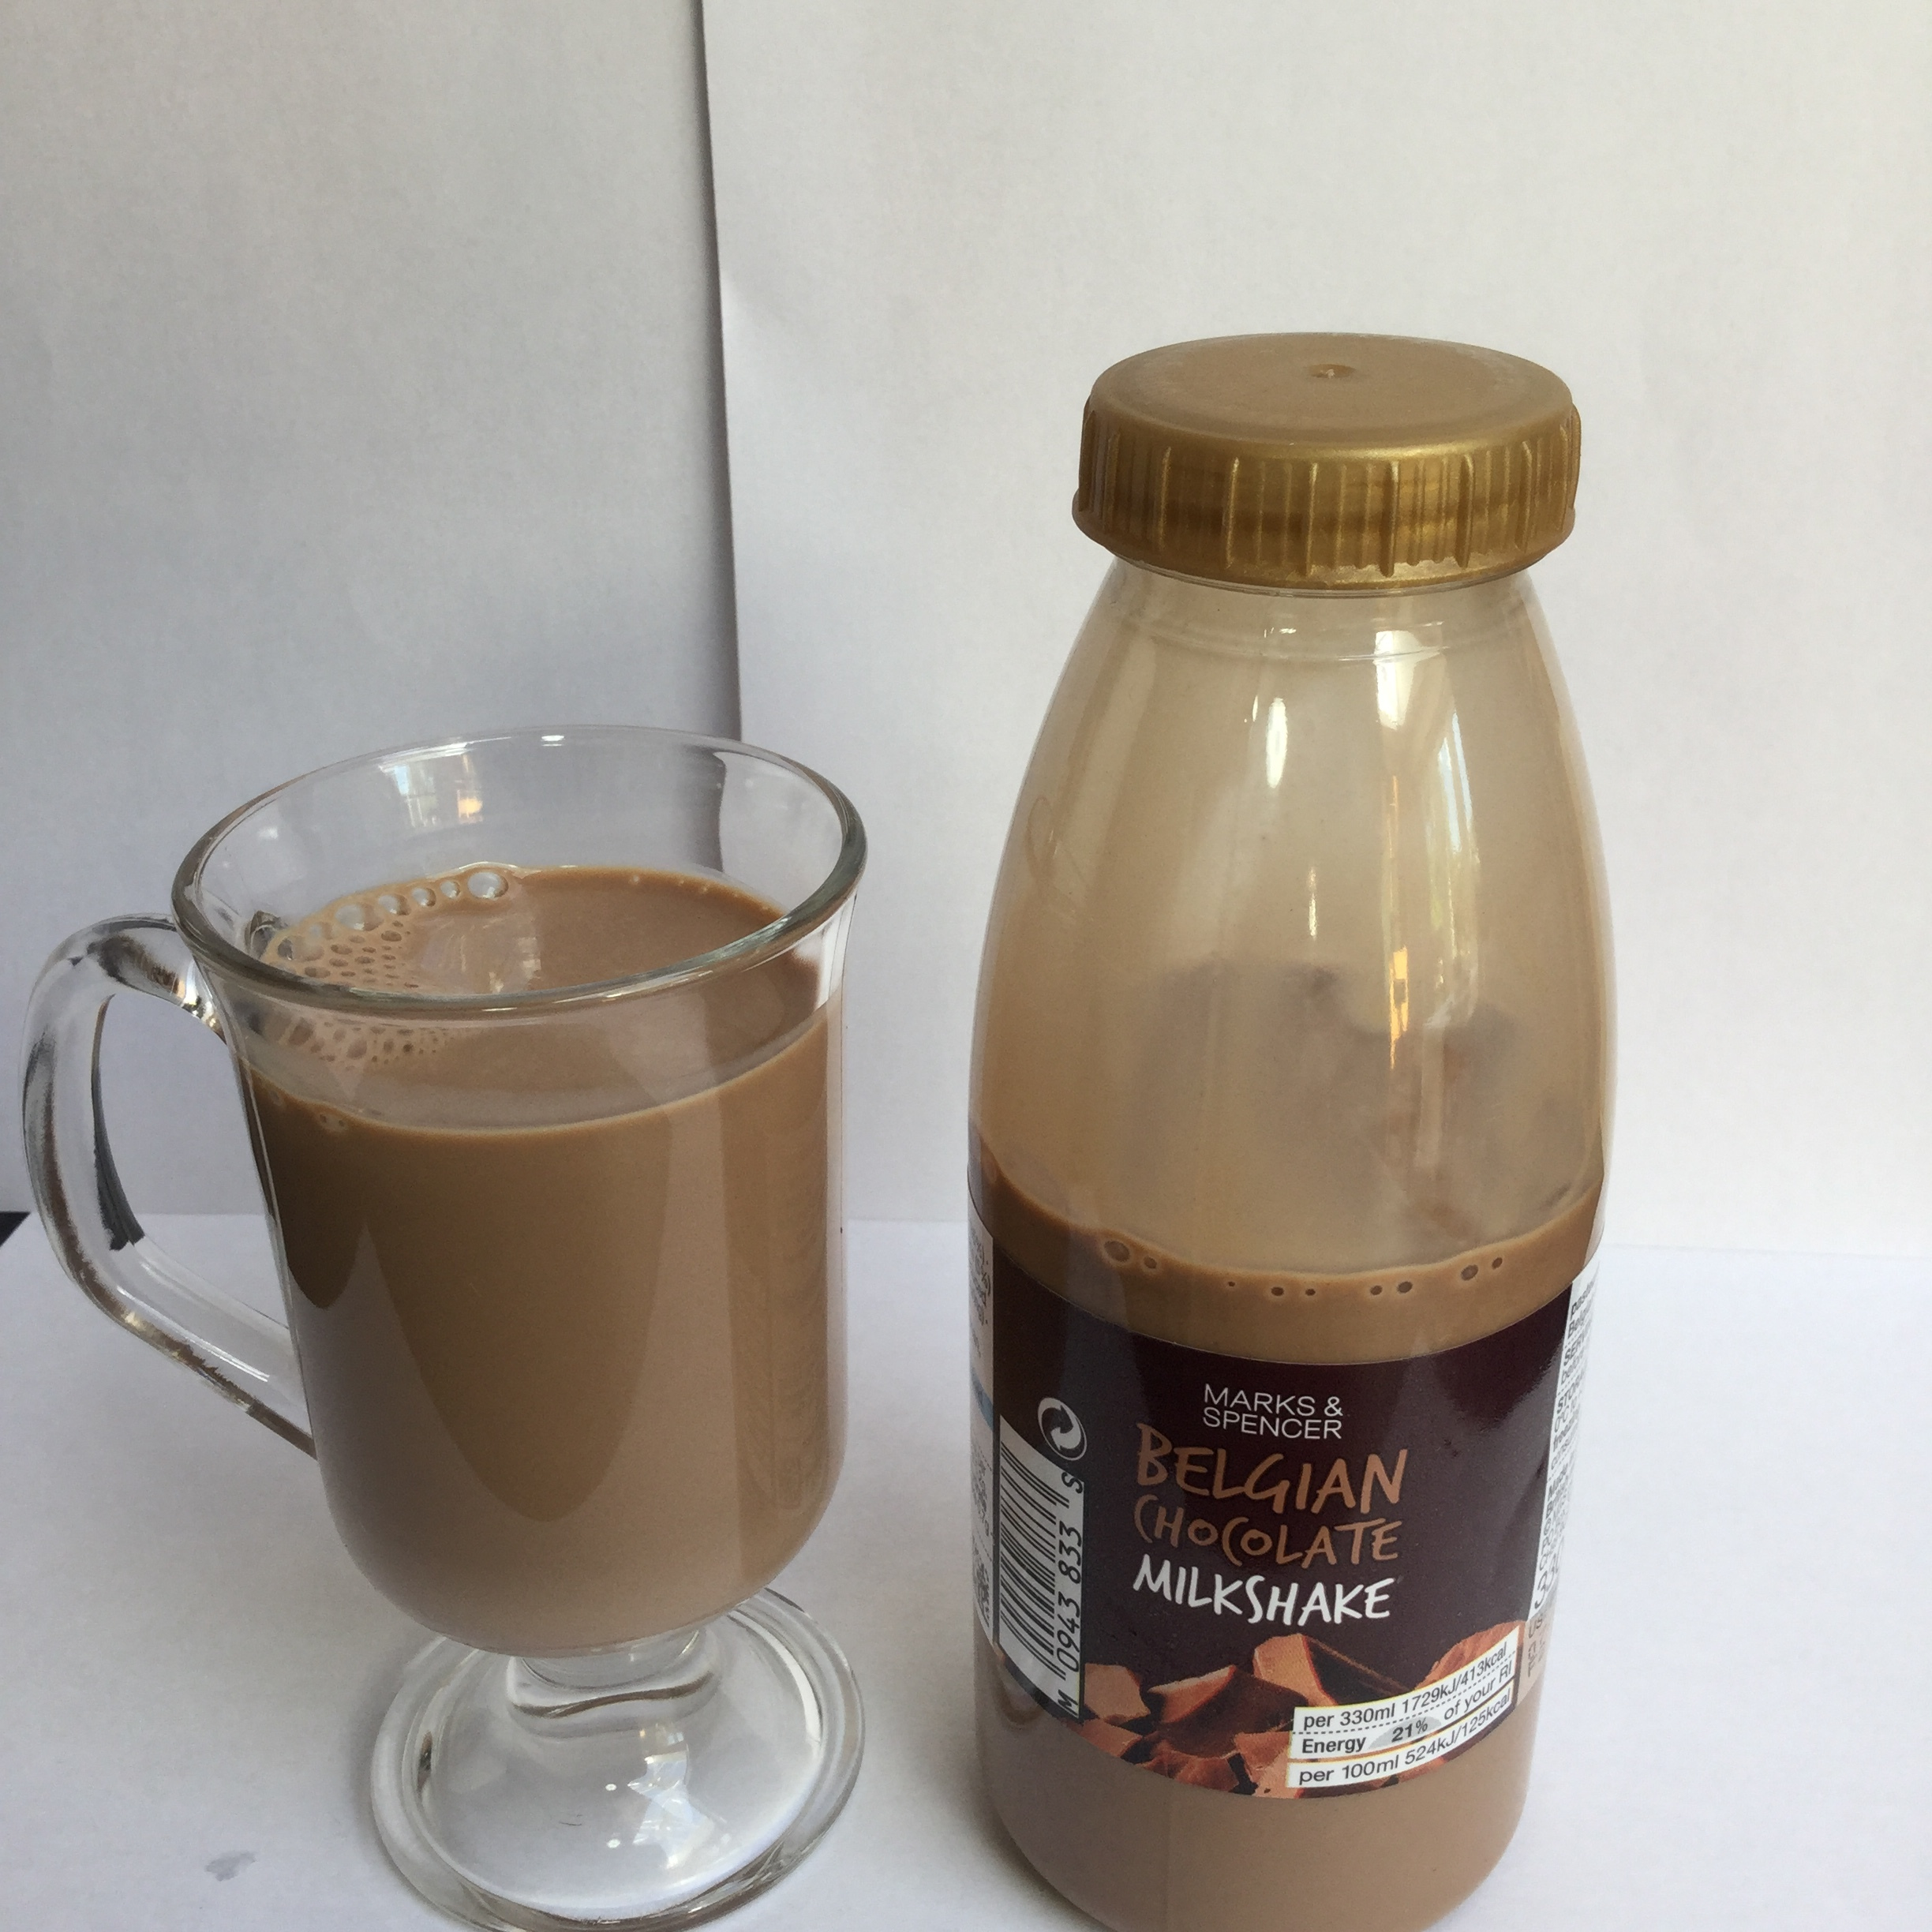 Marks & Spencer Belgian Chocolate Milkshake Cup